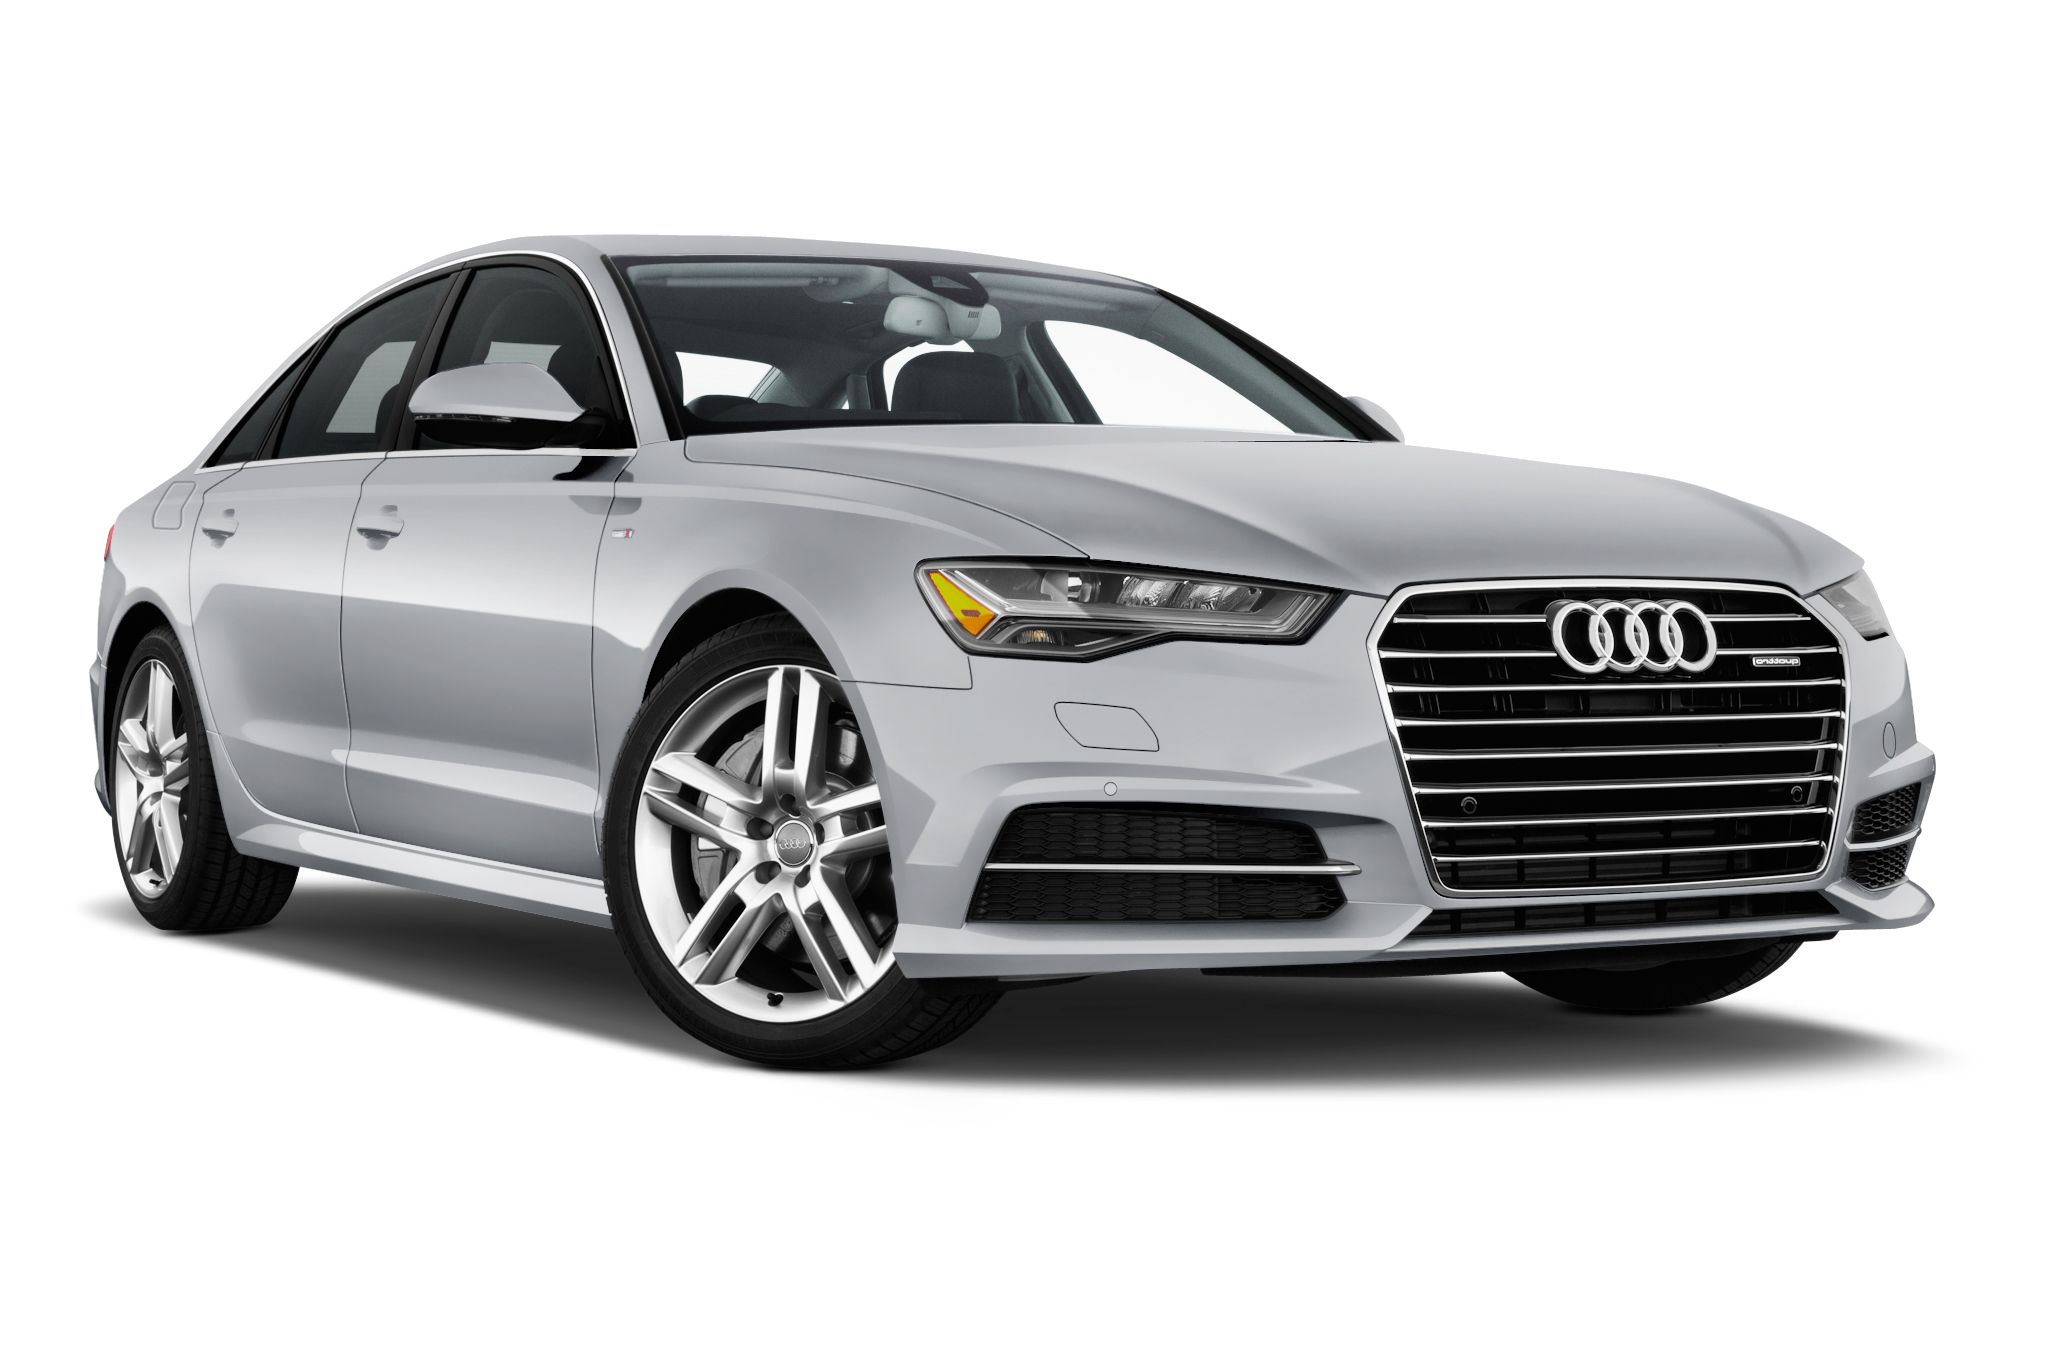 audi a6 saloon front angle view